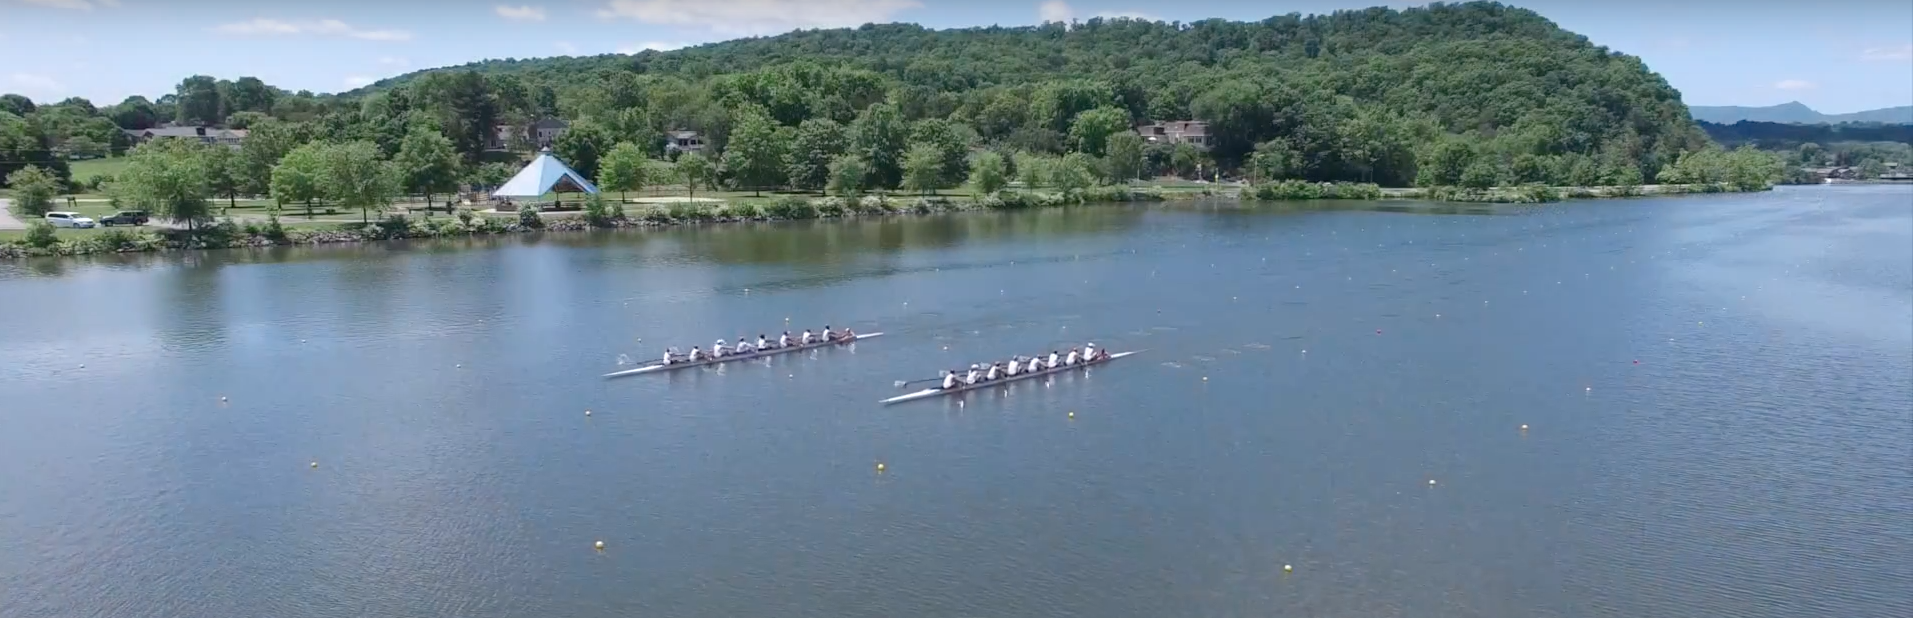 two rowing teams on the water in the distance